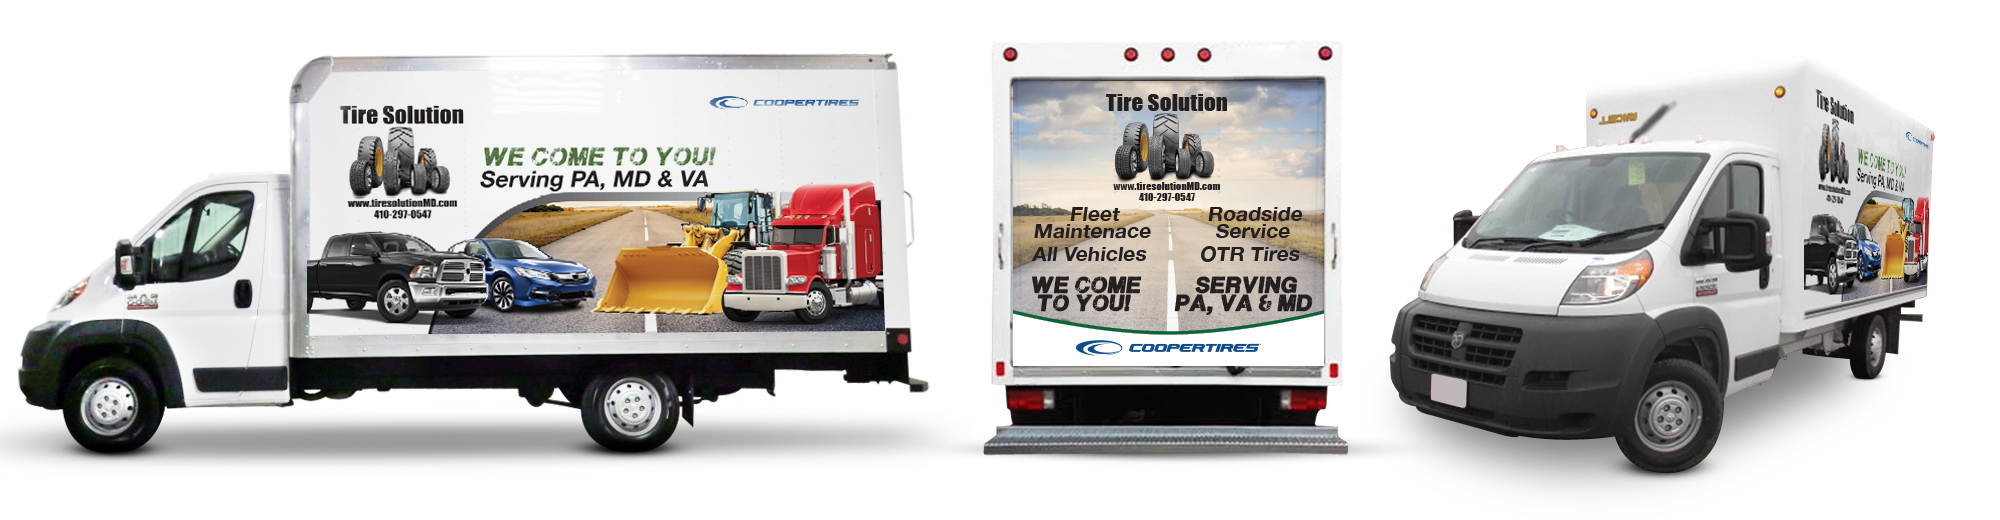 Tire Solution Box Truck